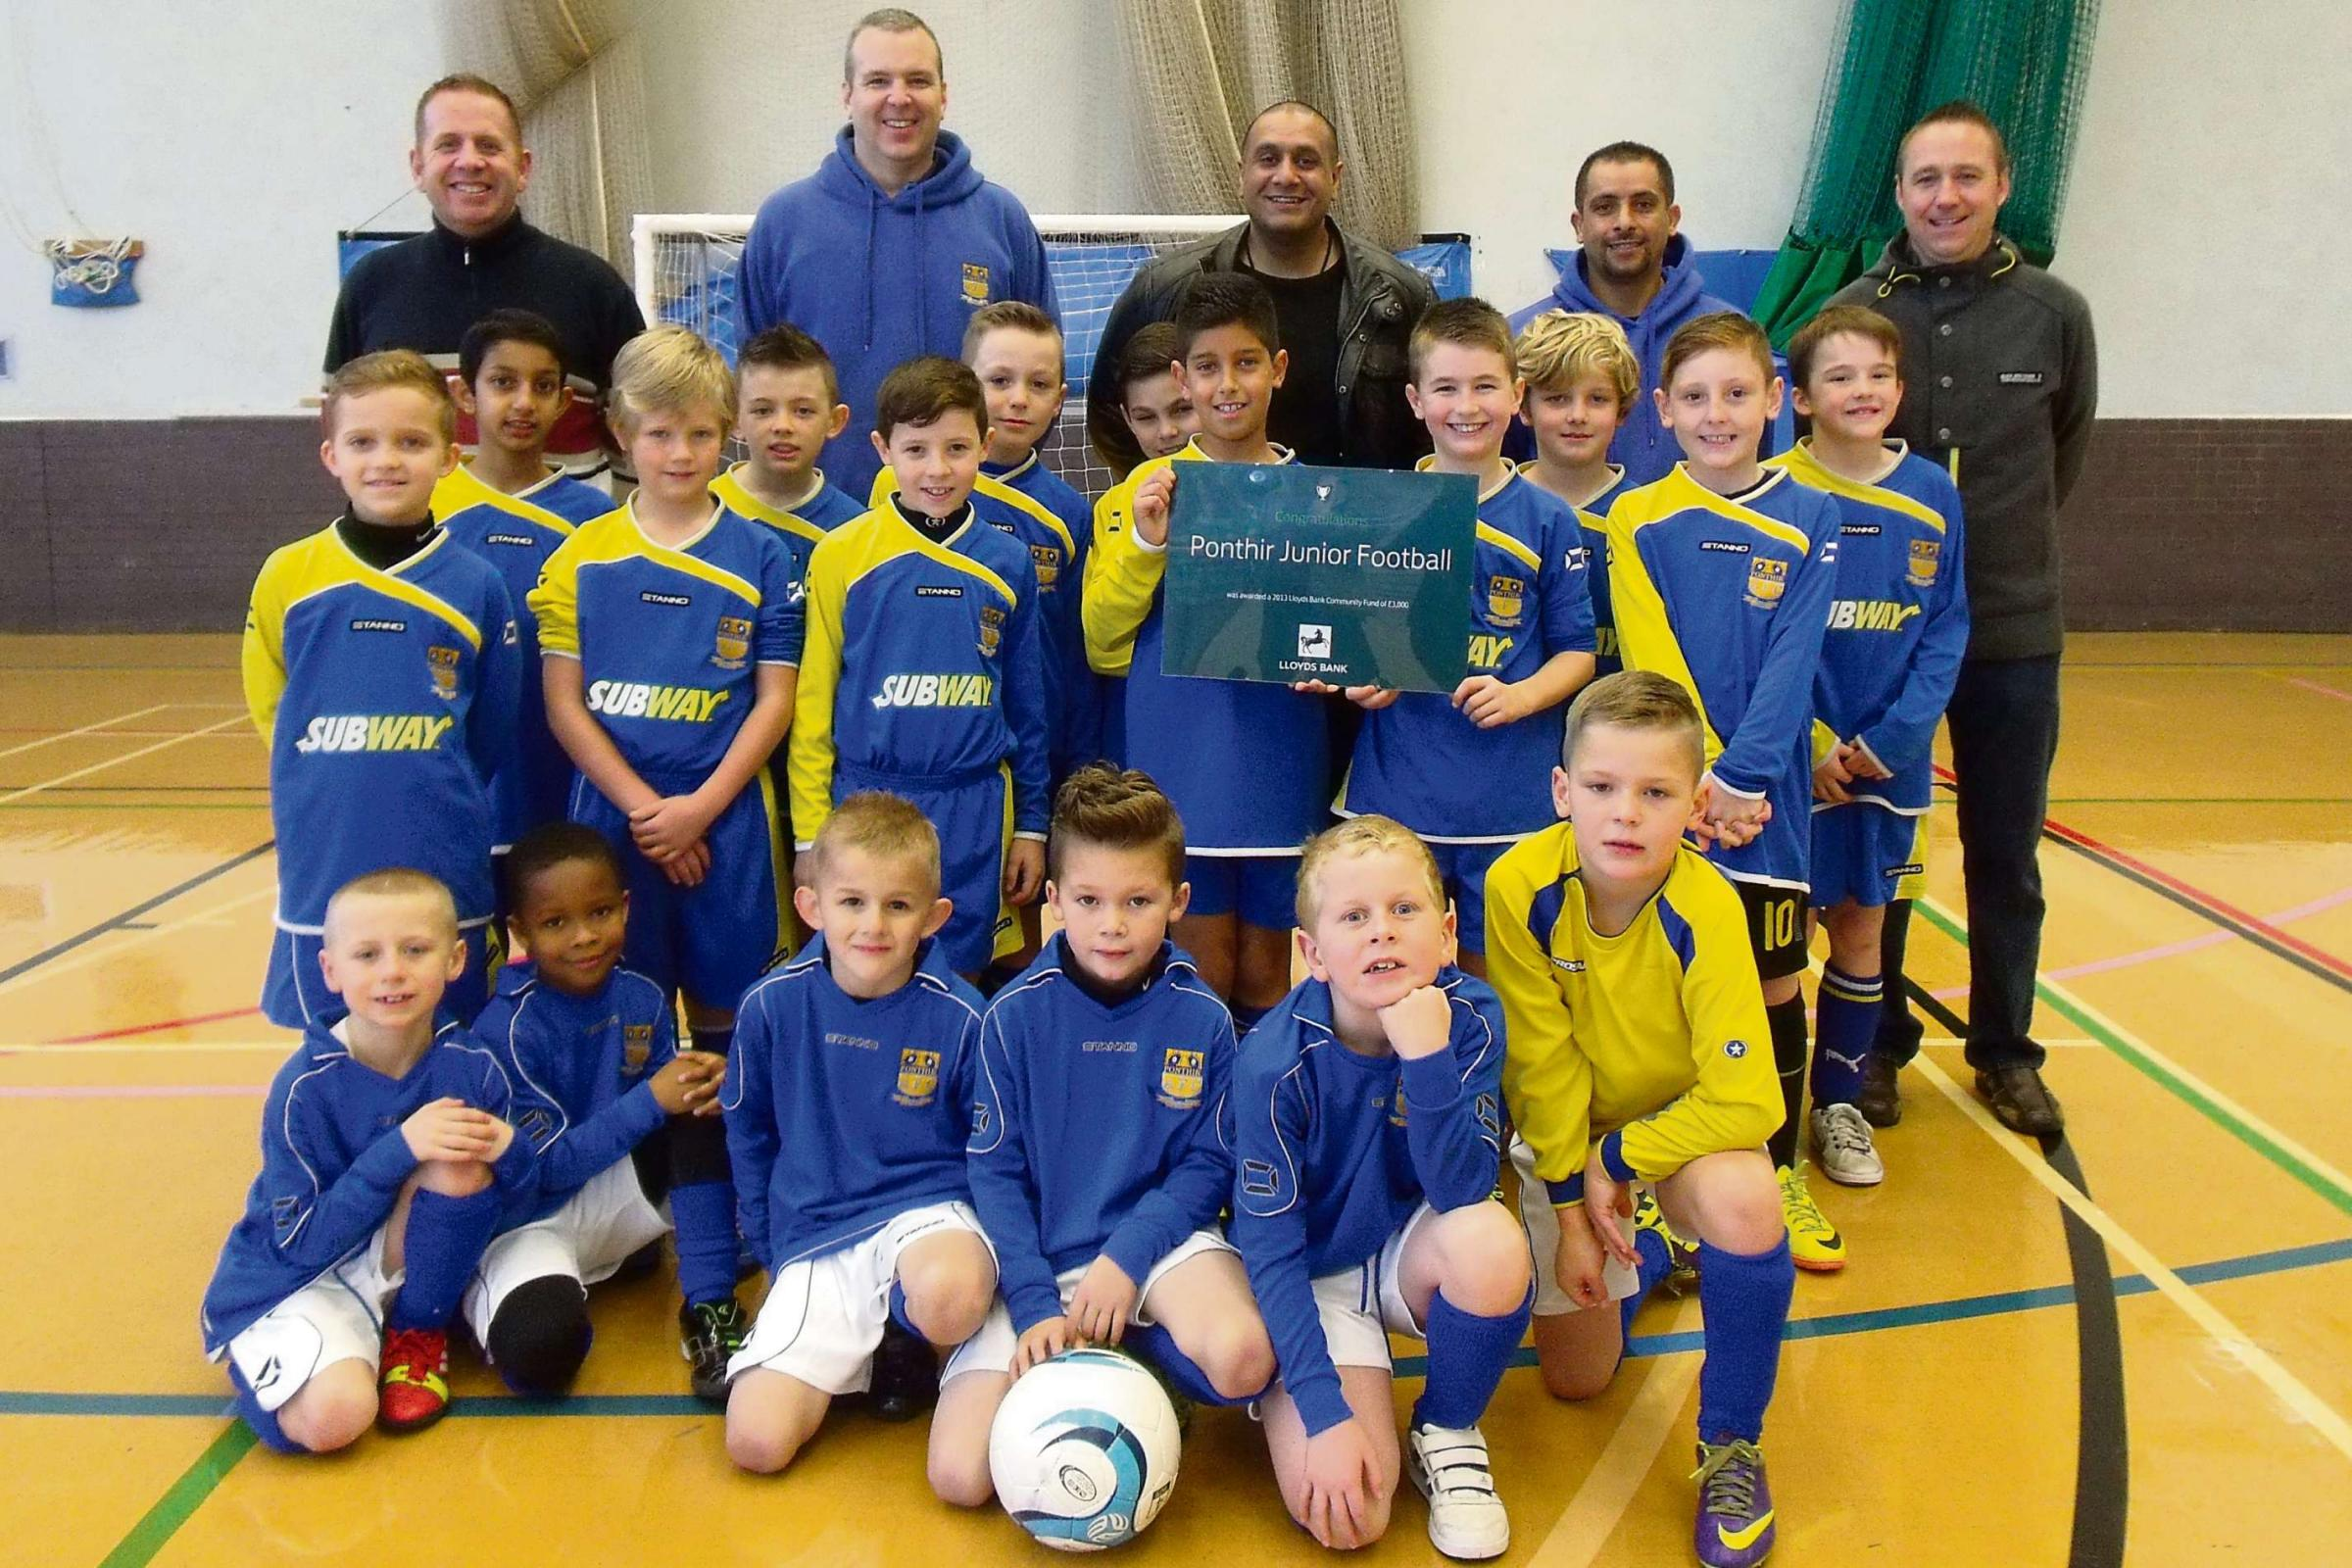 Ponthir football club wins £3k funding